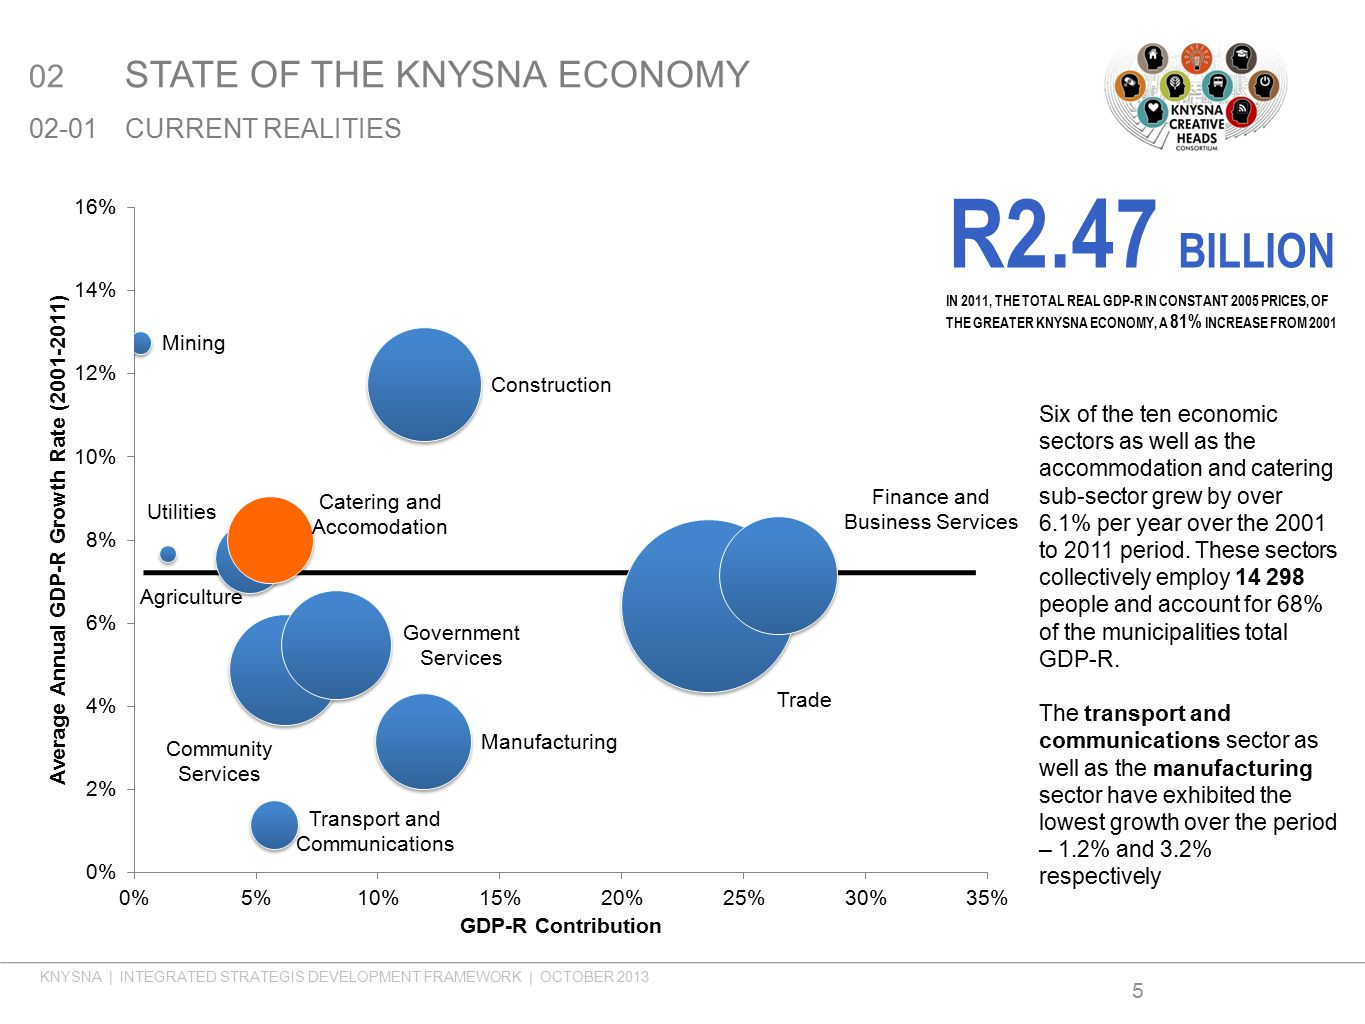 Six of the ten economic sectors as well as the accommodation and catering sub-sector grew by over 6.1% per year over the 2001 to 2011 period.